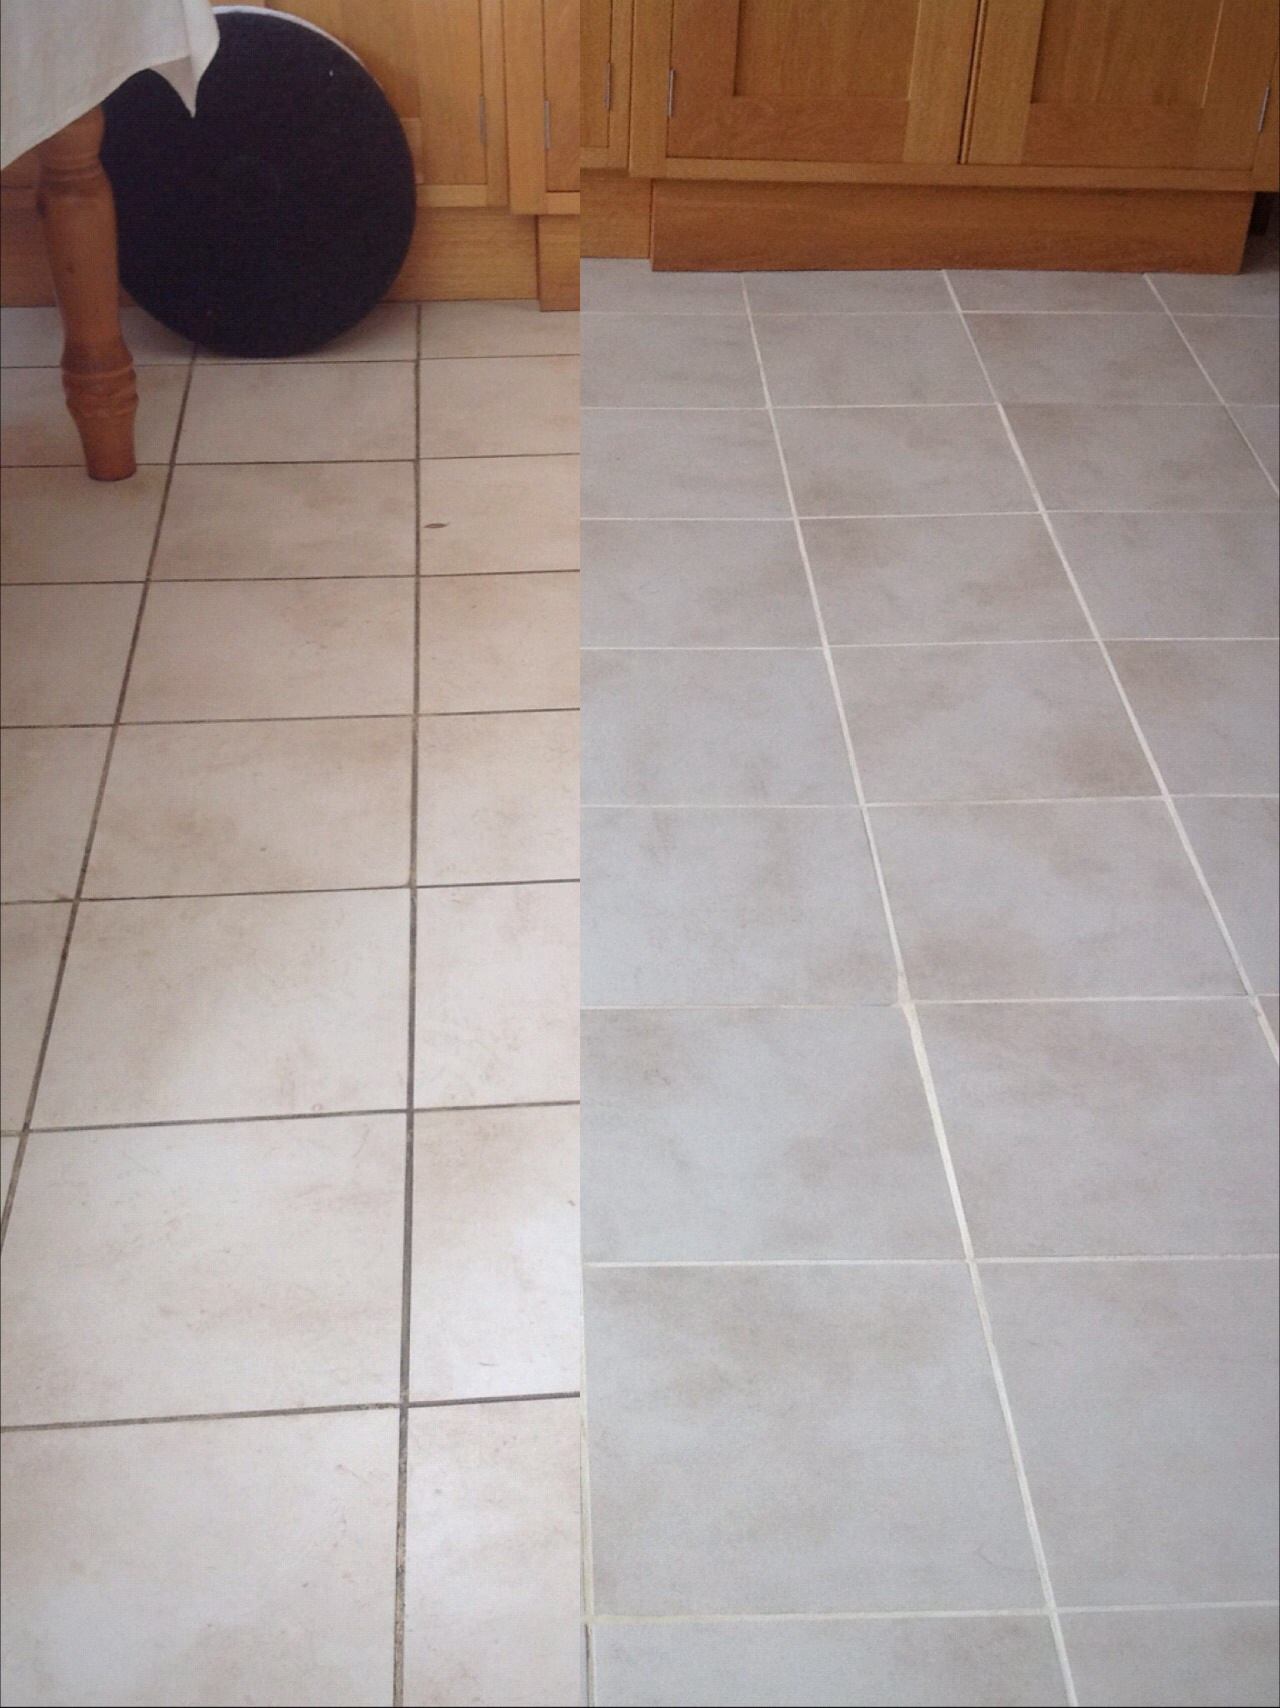 Cleaning kitchen floor tile and grout grout protection dailygadgetfo Images